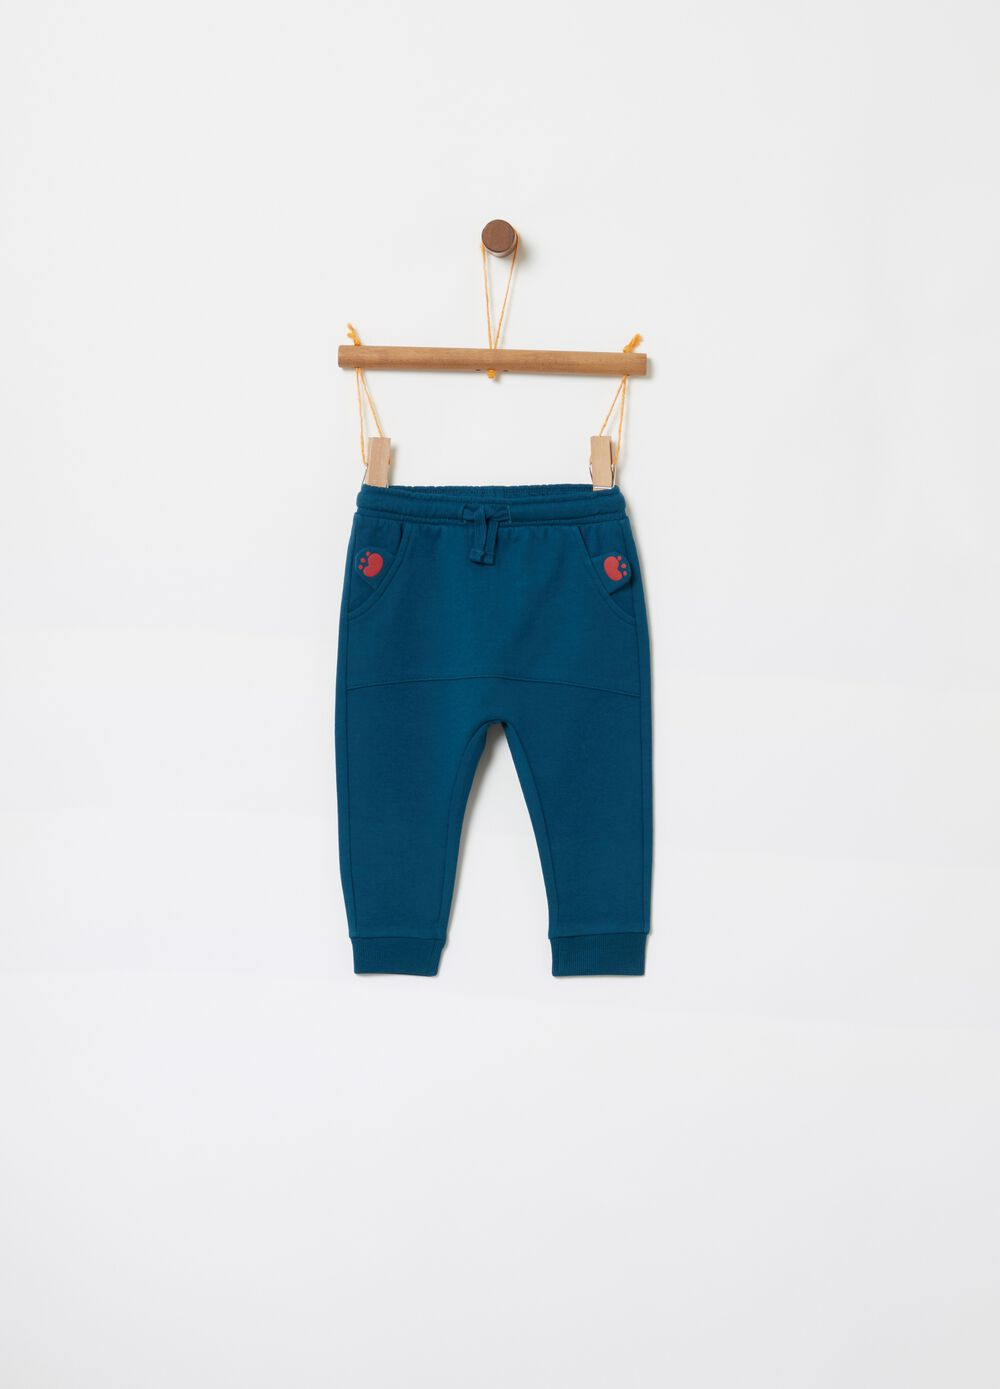 Trousers in French terry with paw prints